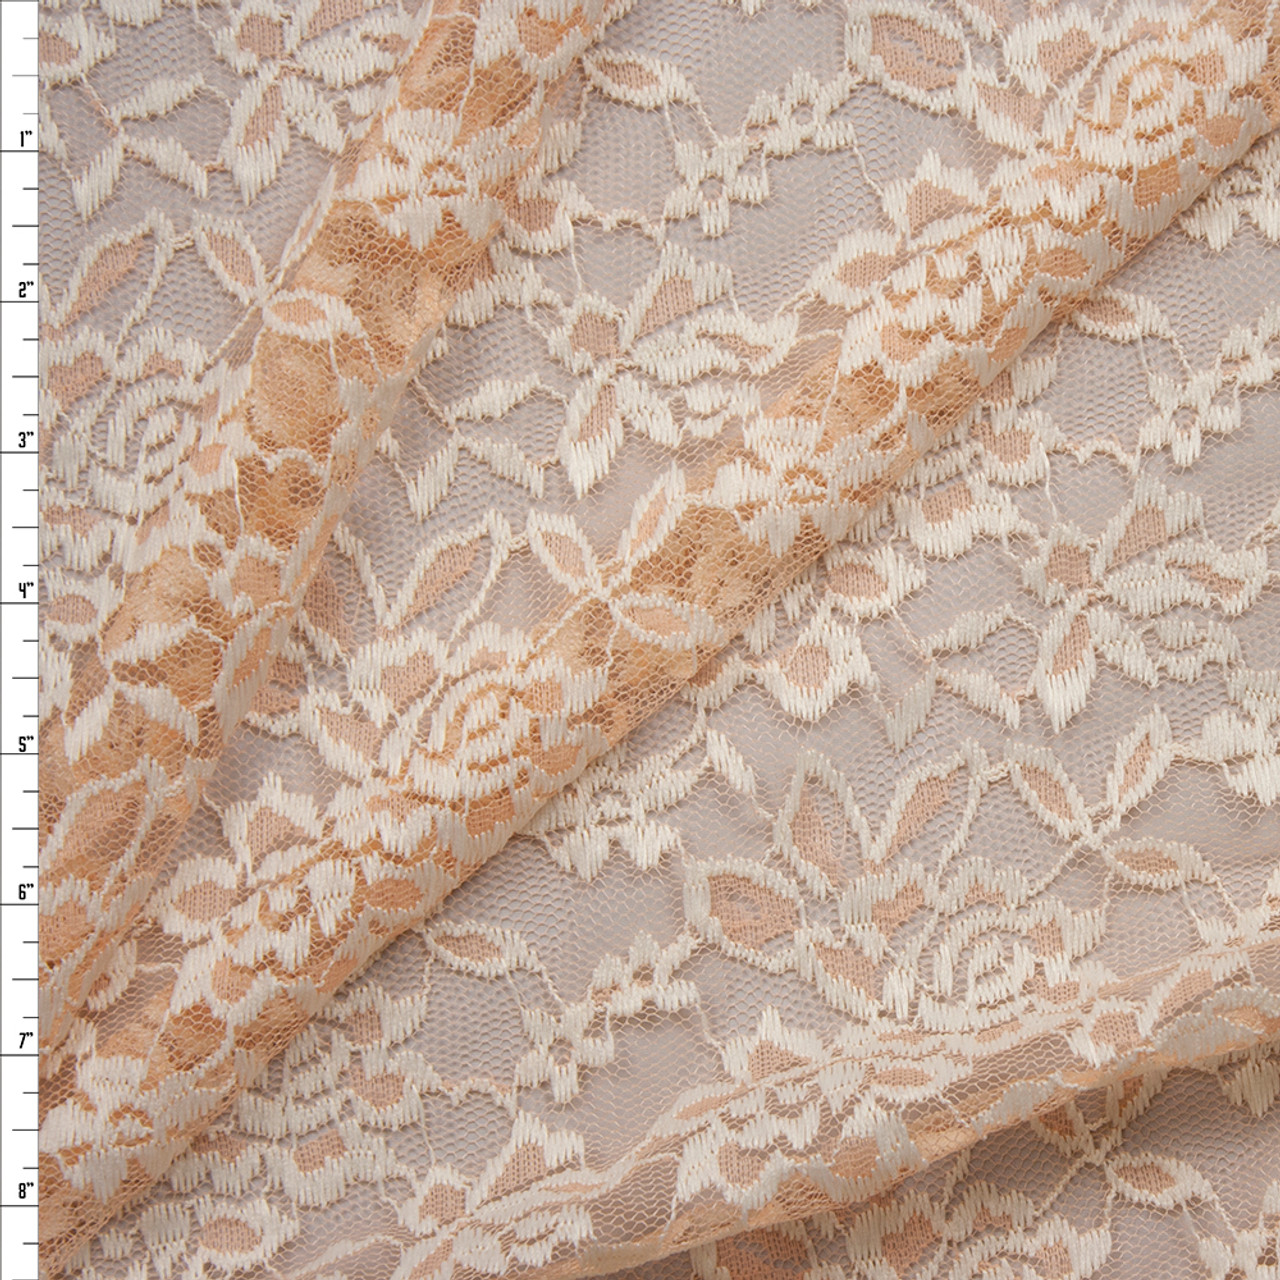 Cali Fabrics Ivory On Peach Floral Lace Fabric By The Yard